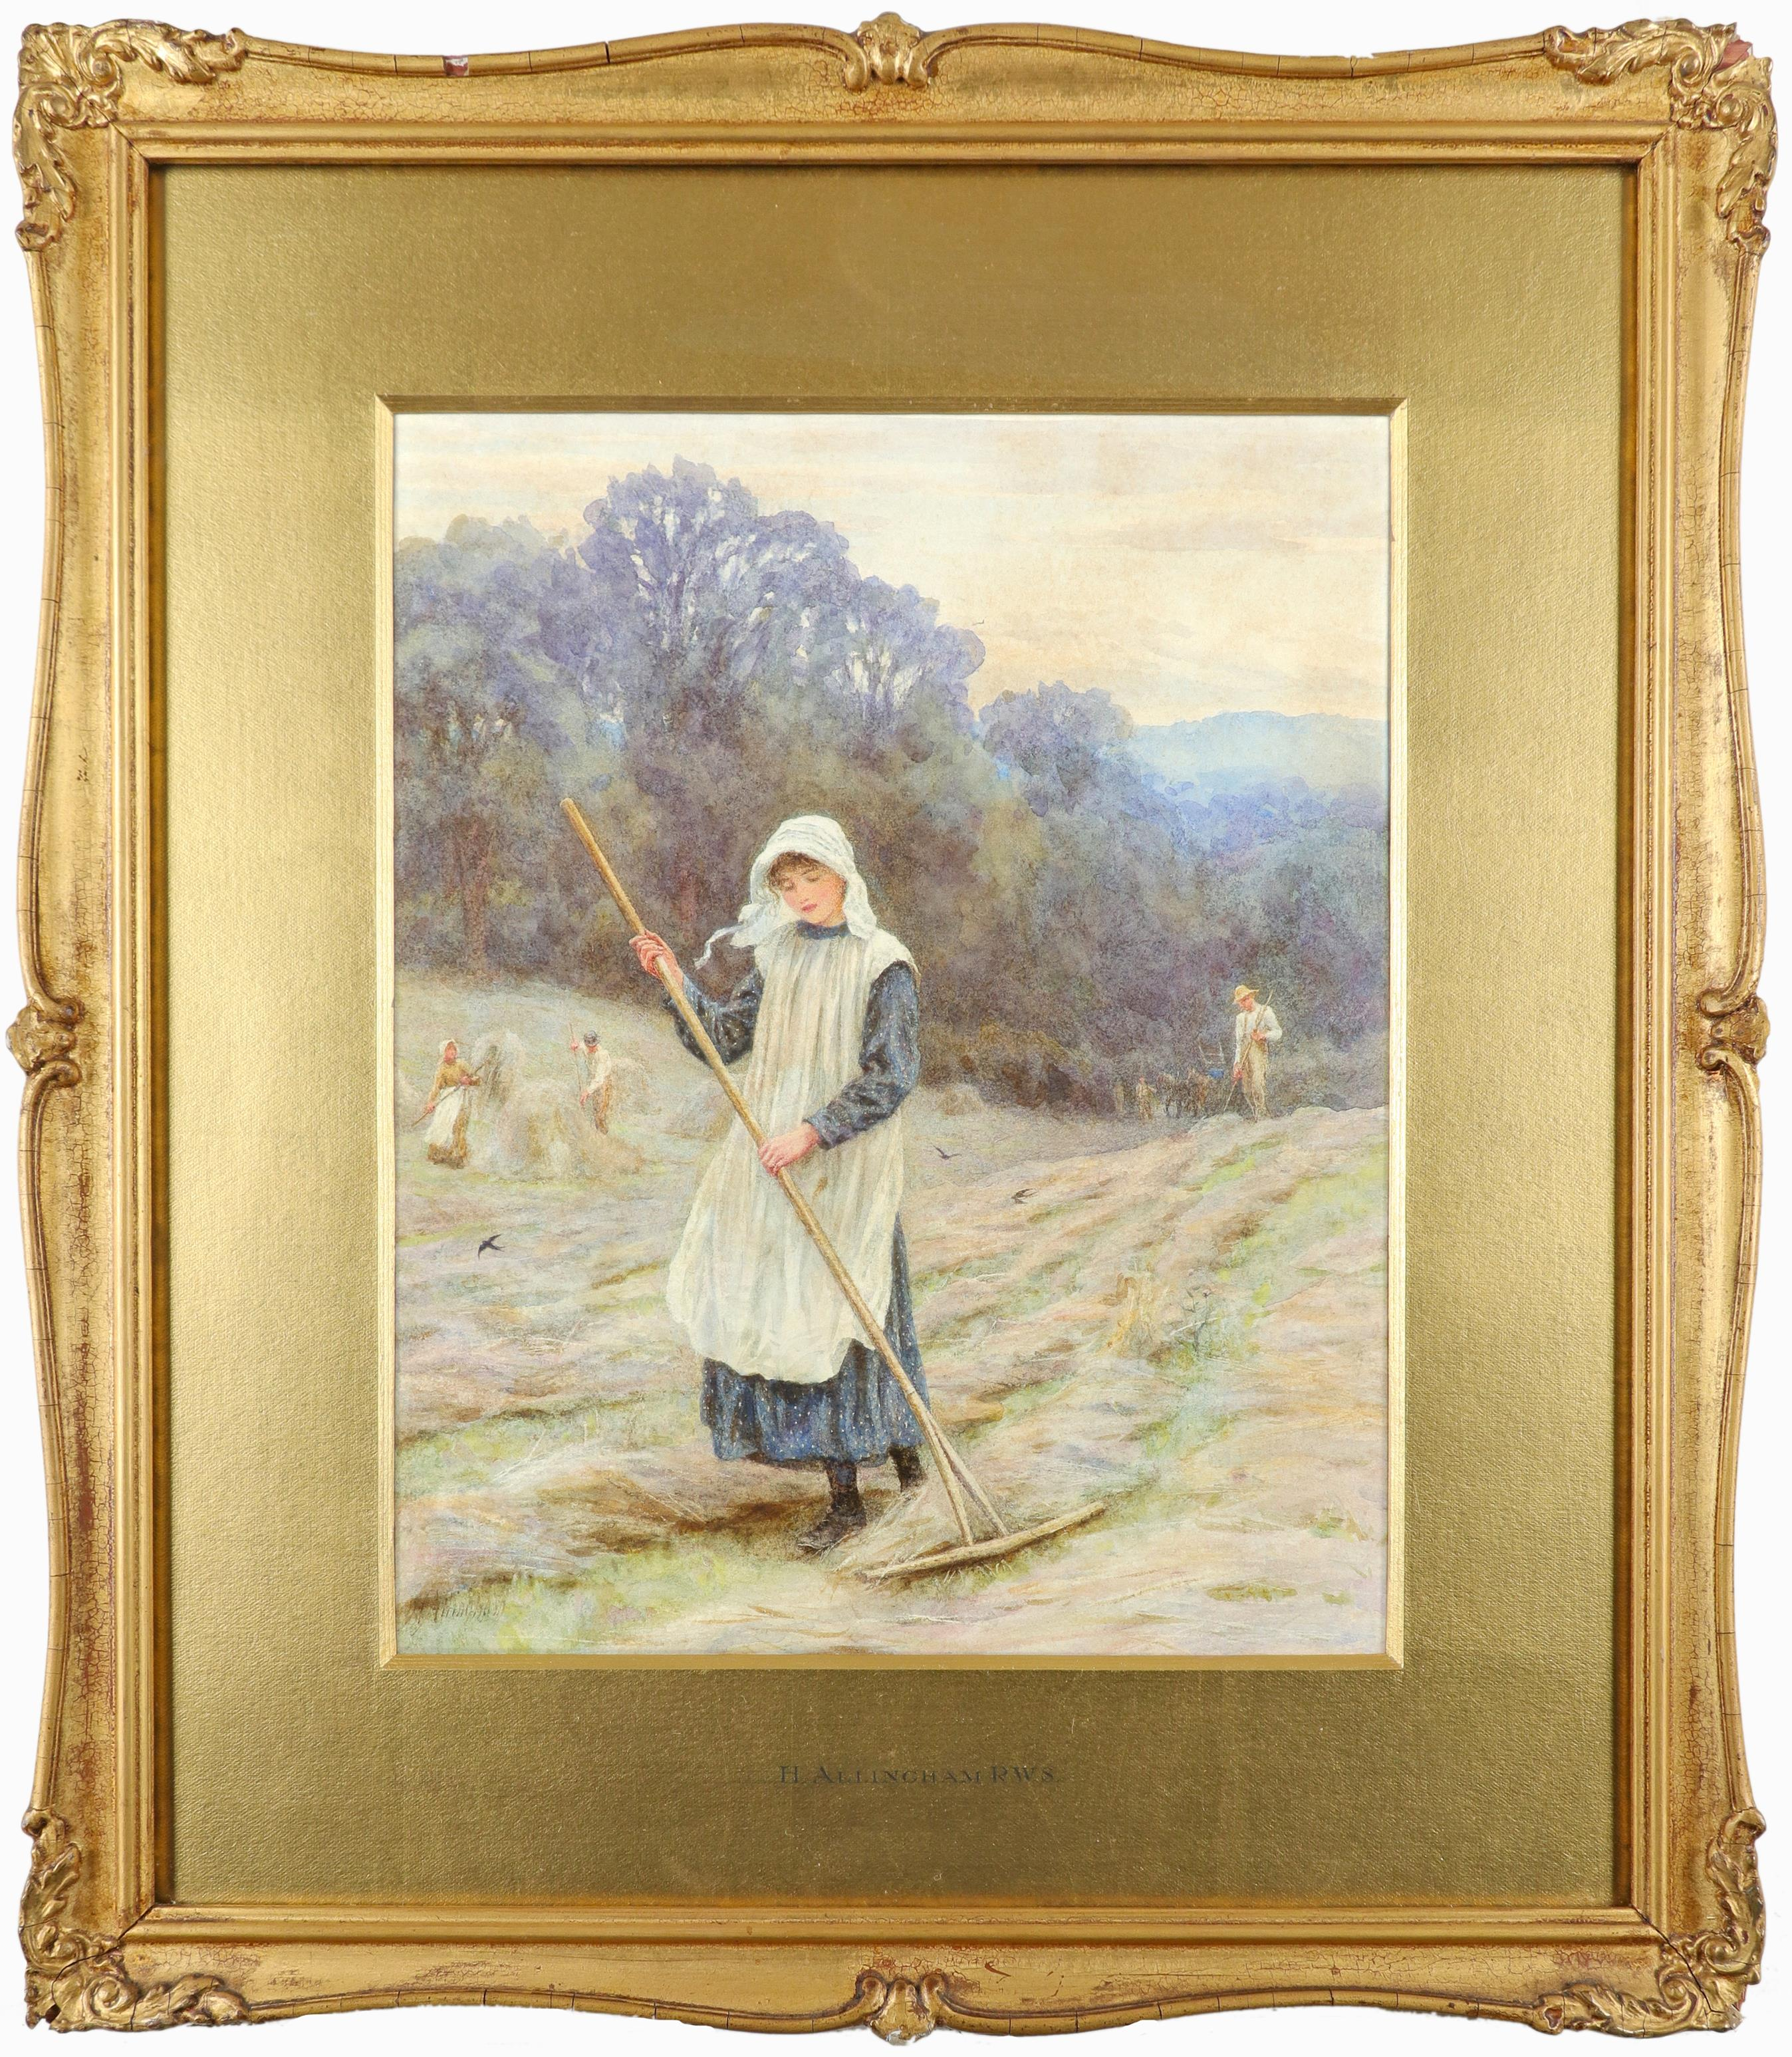 Helen Allingham RWS (1848-1926) Haymaking Signed H Allingham (lower left) Pencil and watercolour - Image 2 of 3